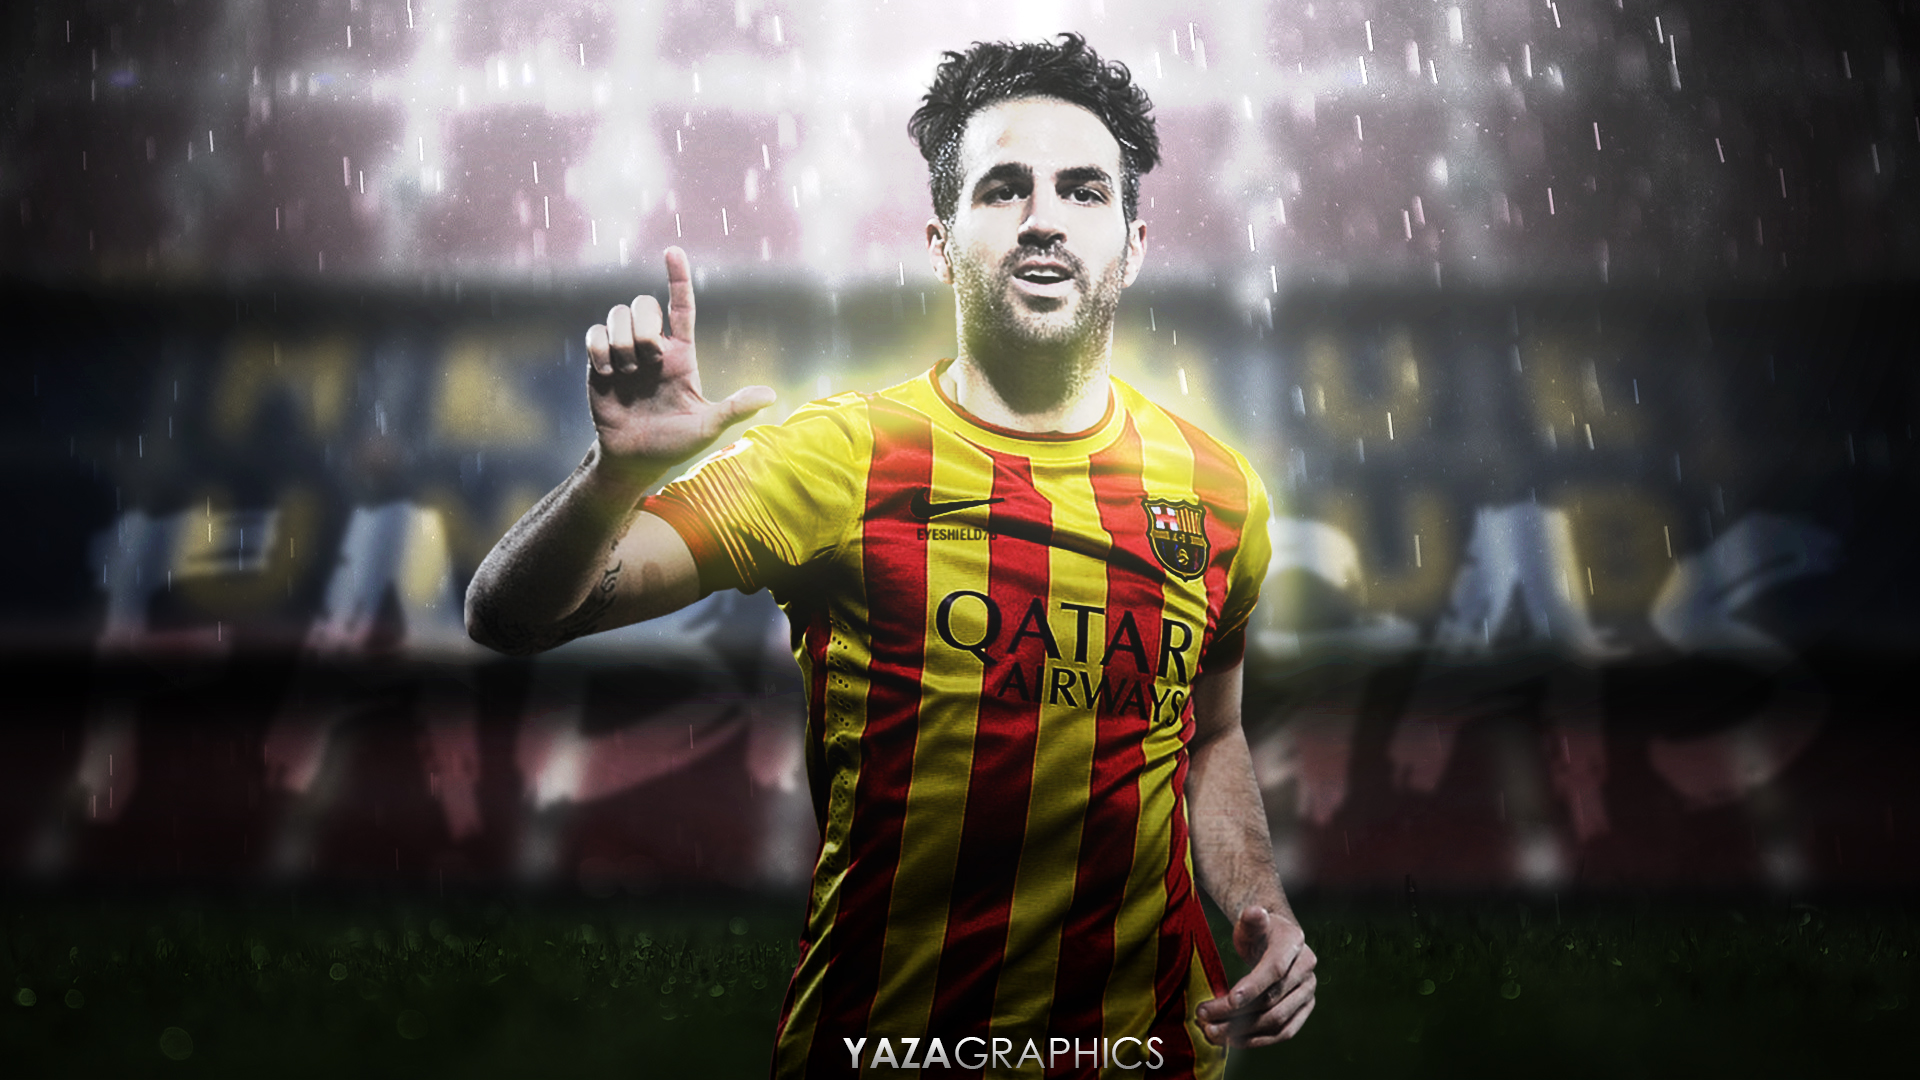 Cesc Fabregas Wallpapers High Resolution and Quality Download 1920x1080